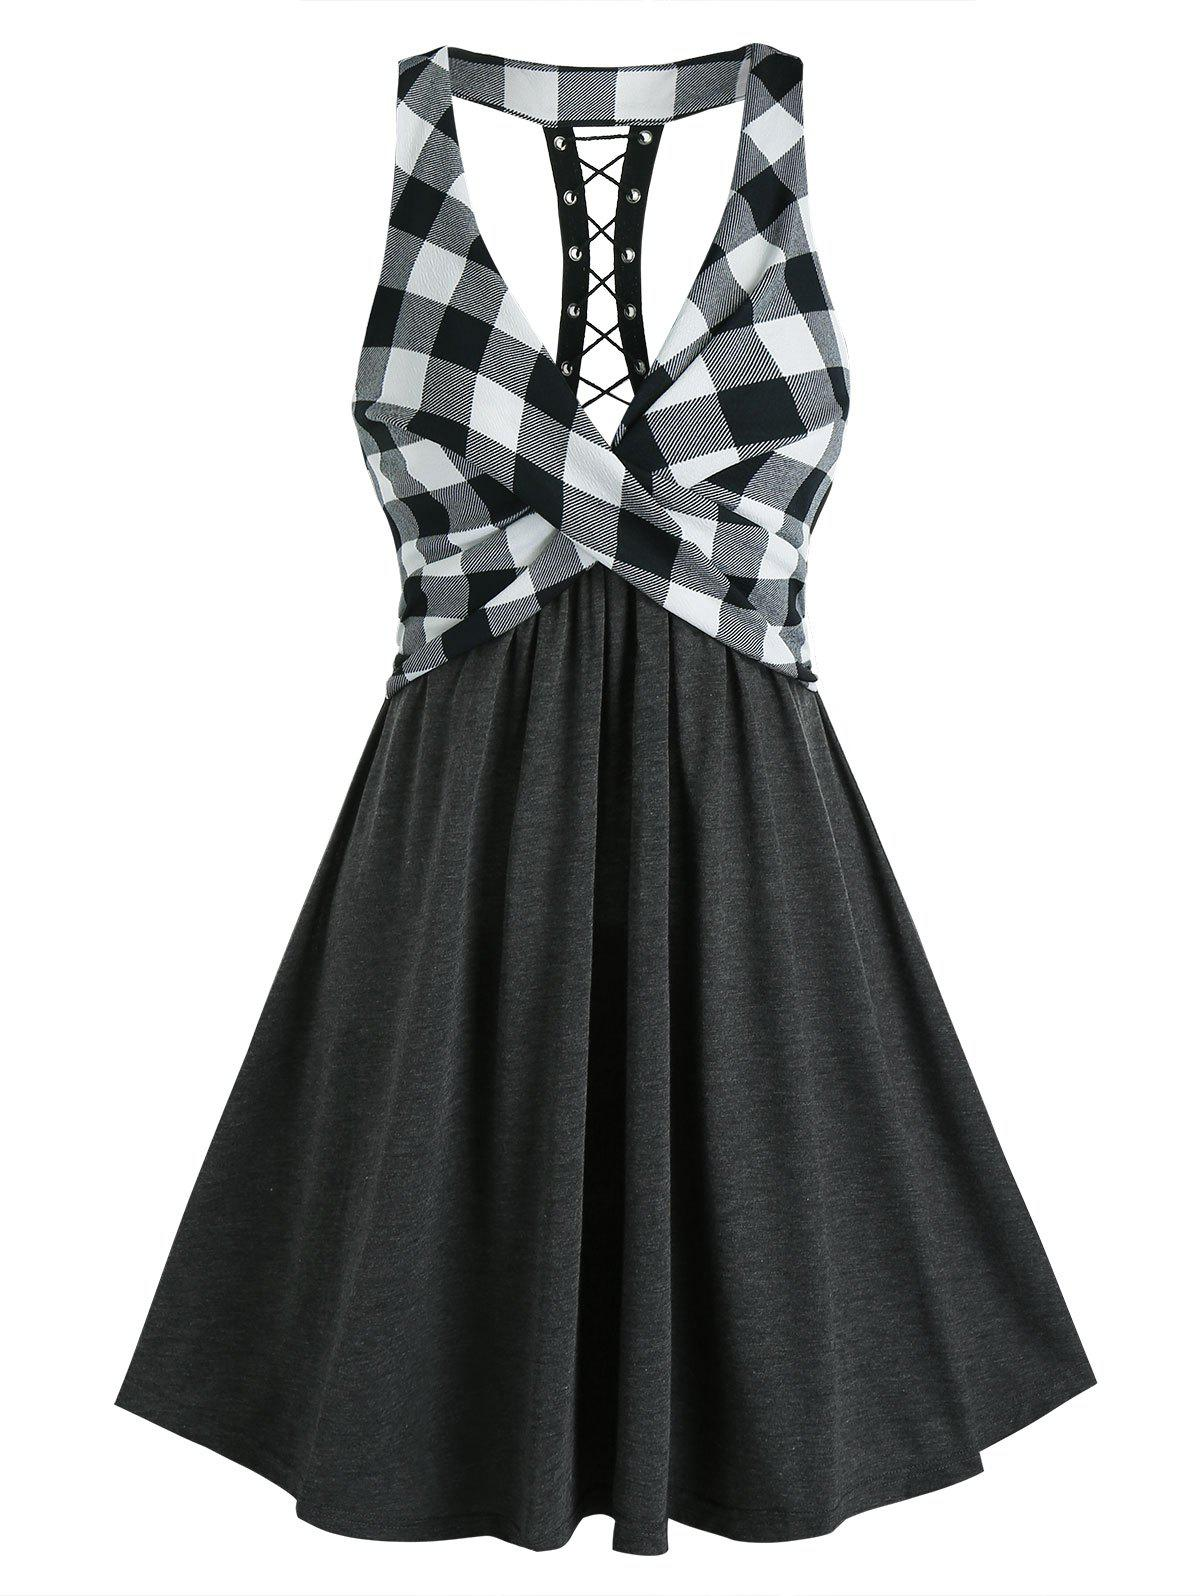 Plaid Print Lace Up Back High Waist Dress - BLACK 2XL